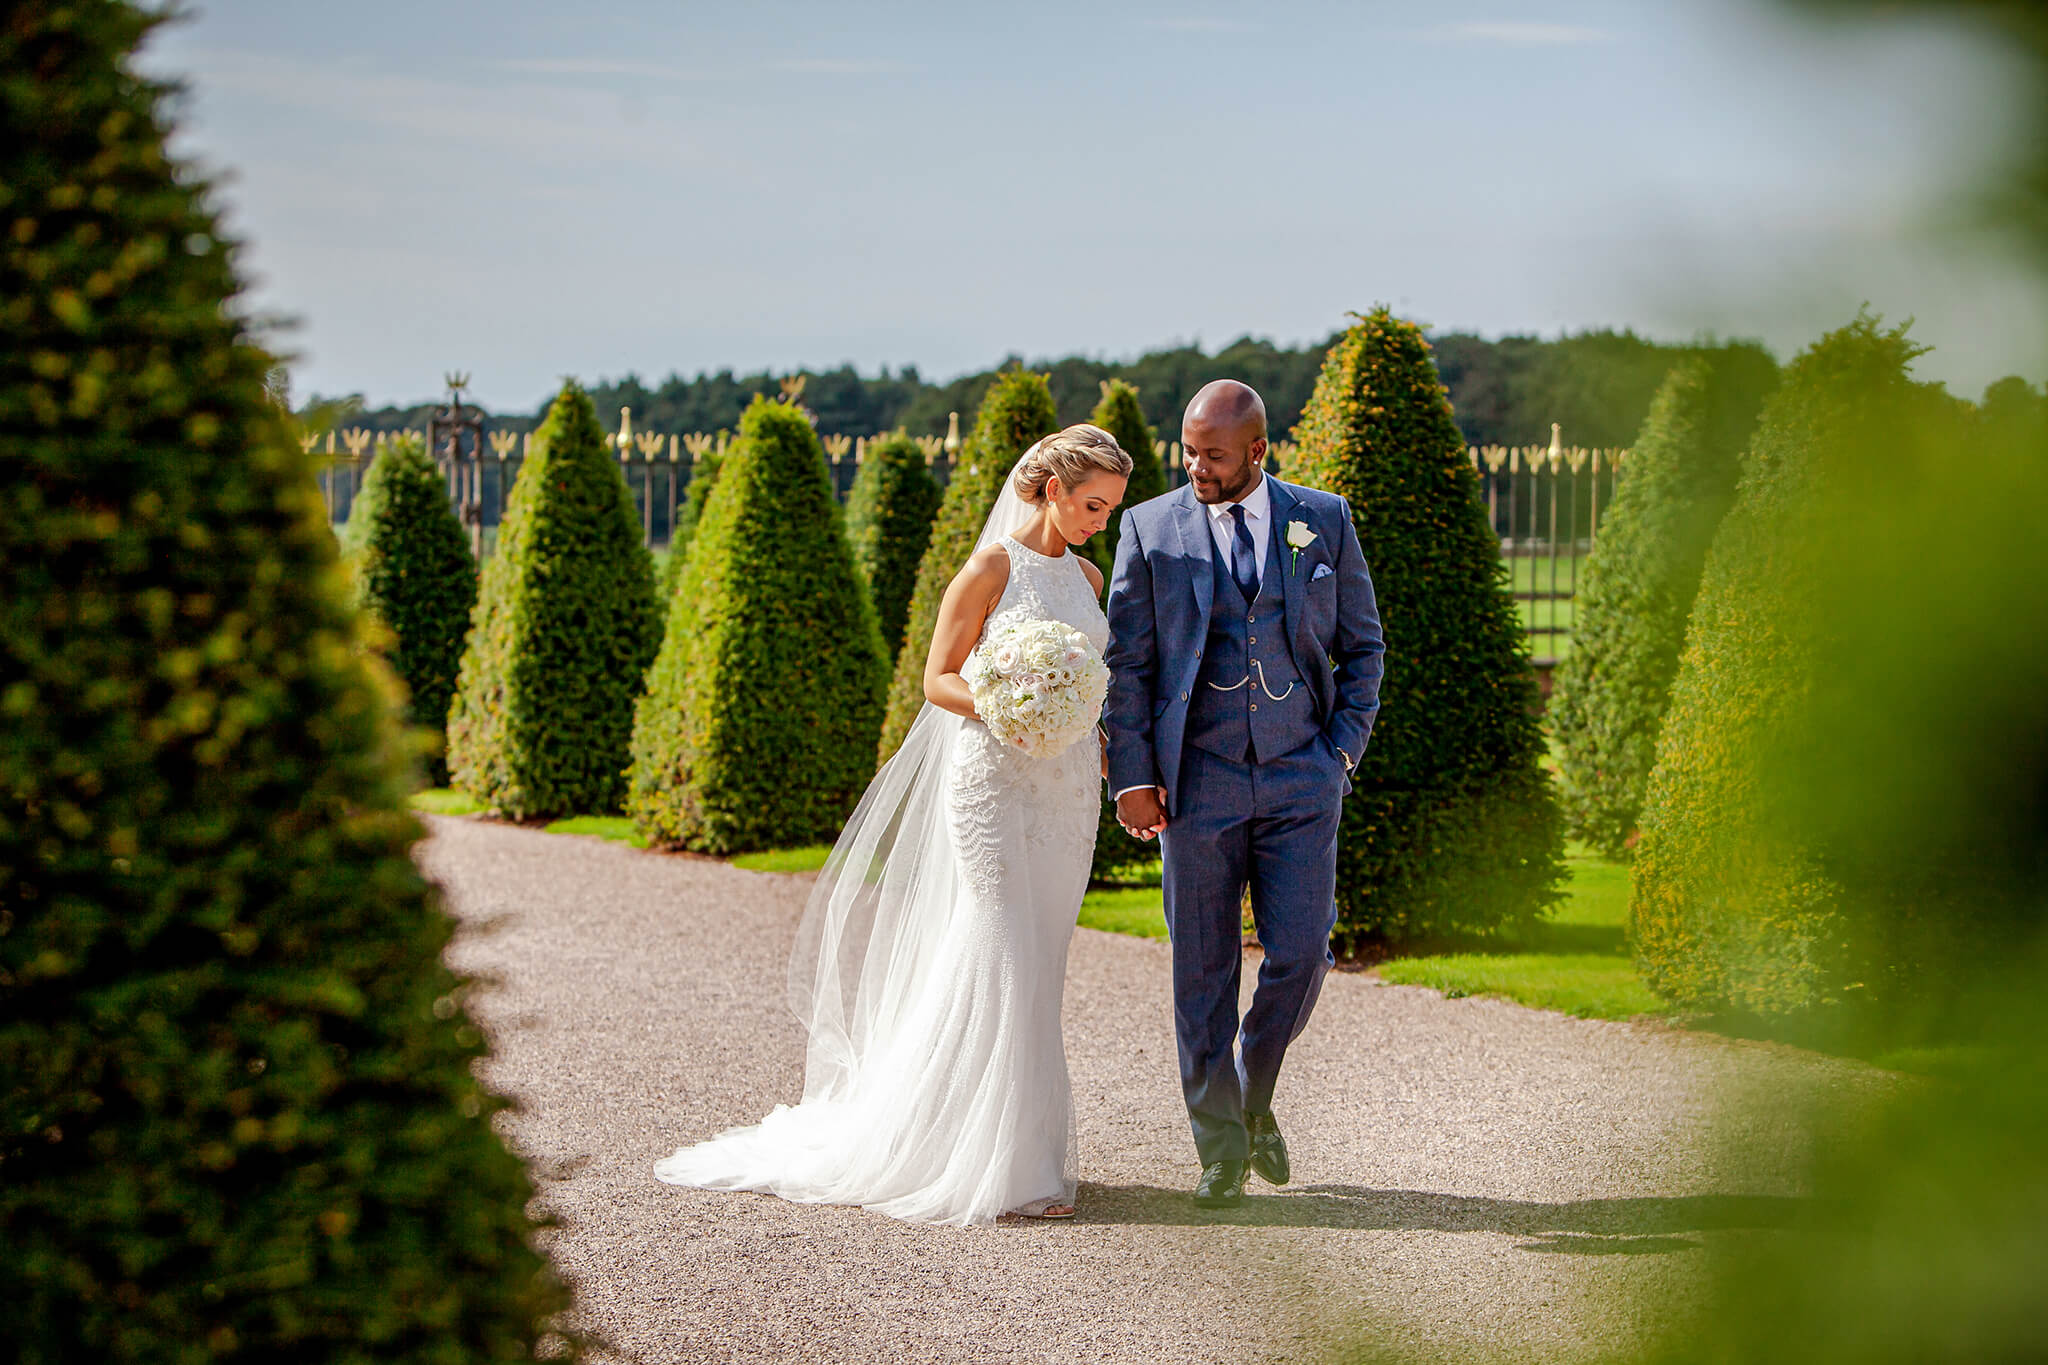 knowsley-hall-wedding-stanbury-photography-020